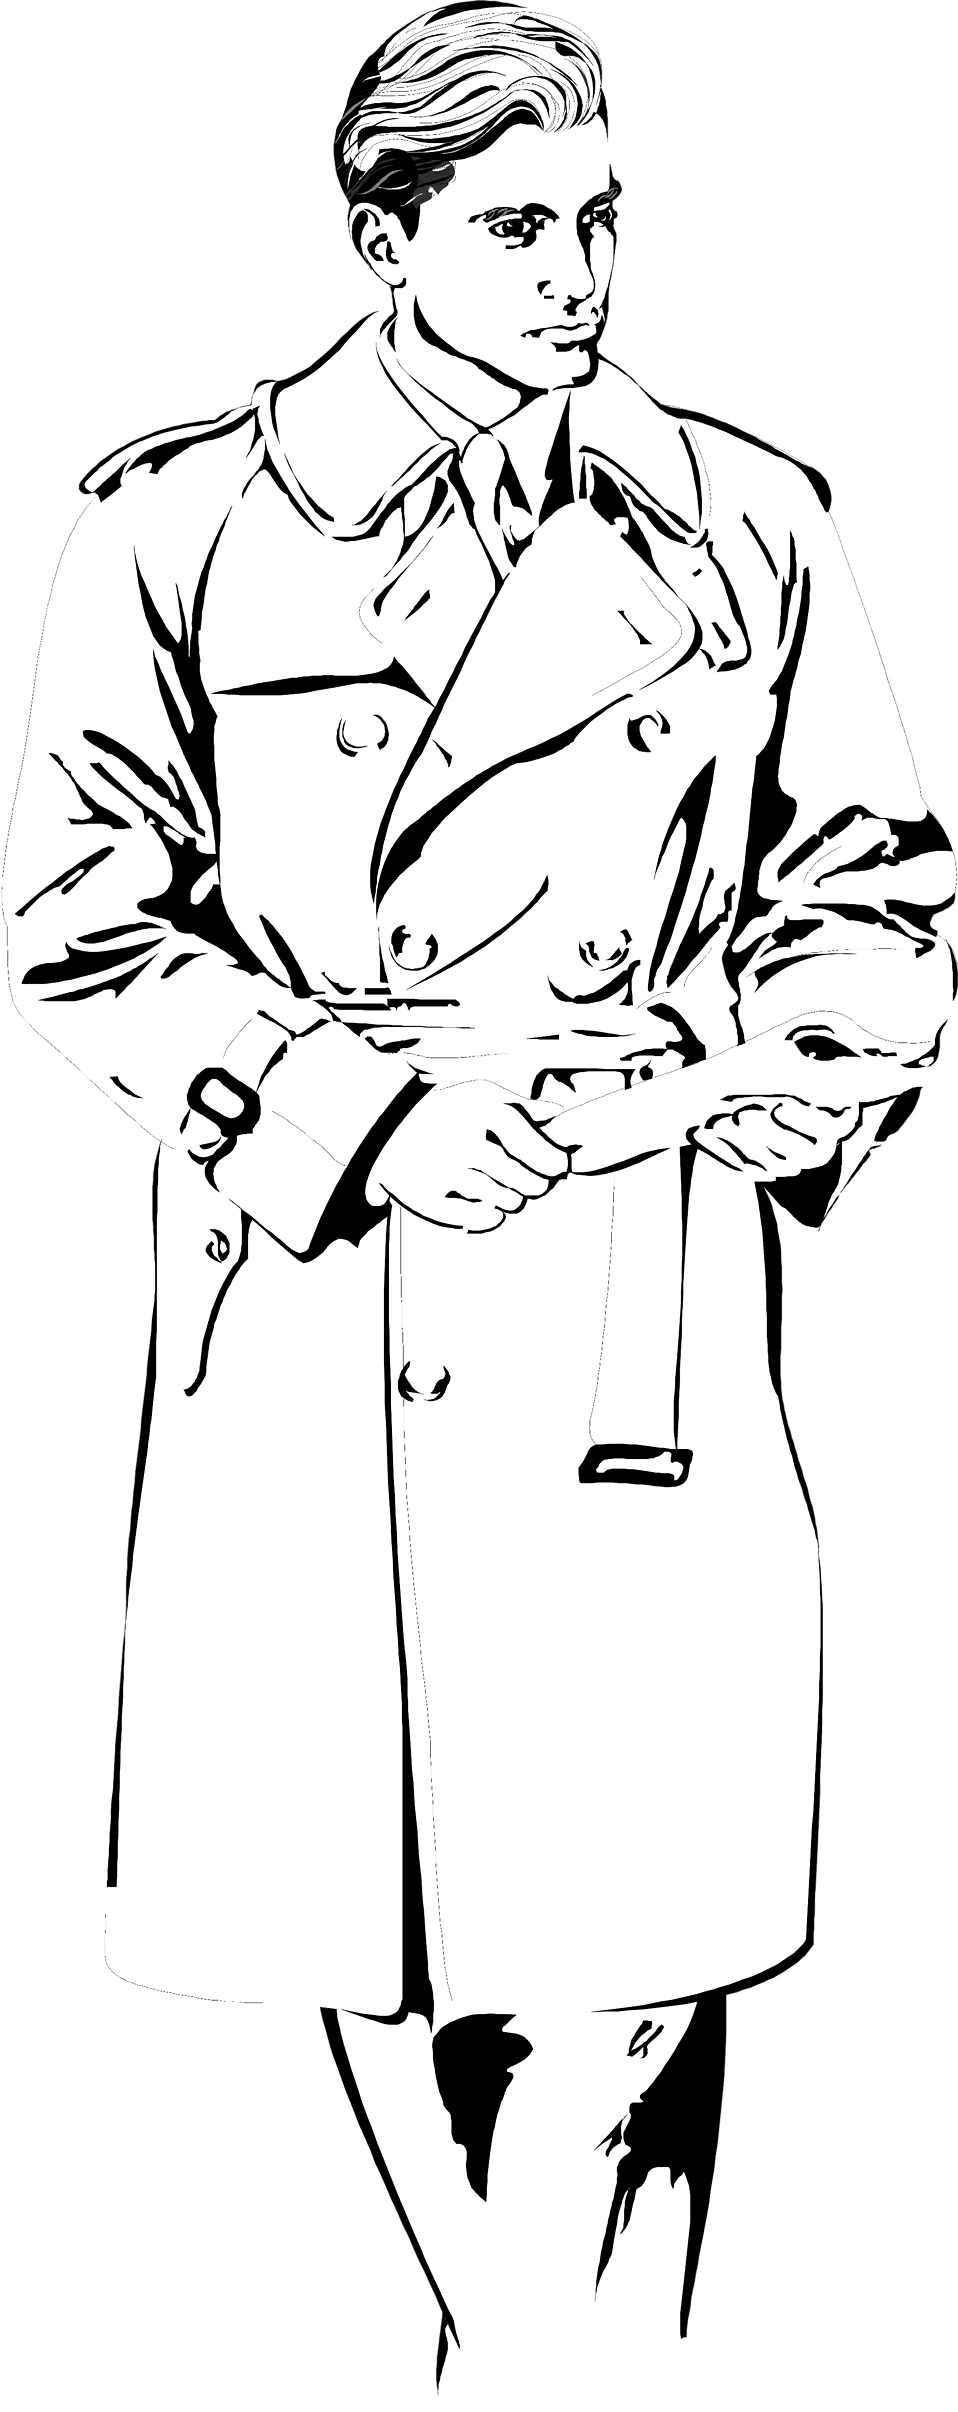 Illustration of a handsome man in a rain coat.